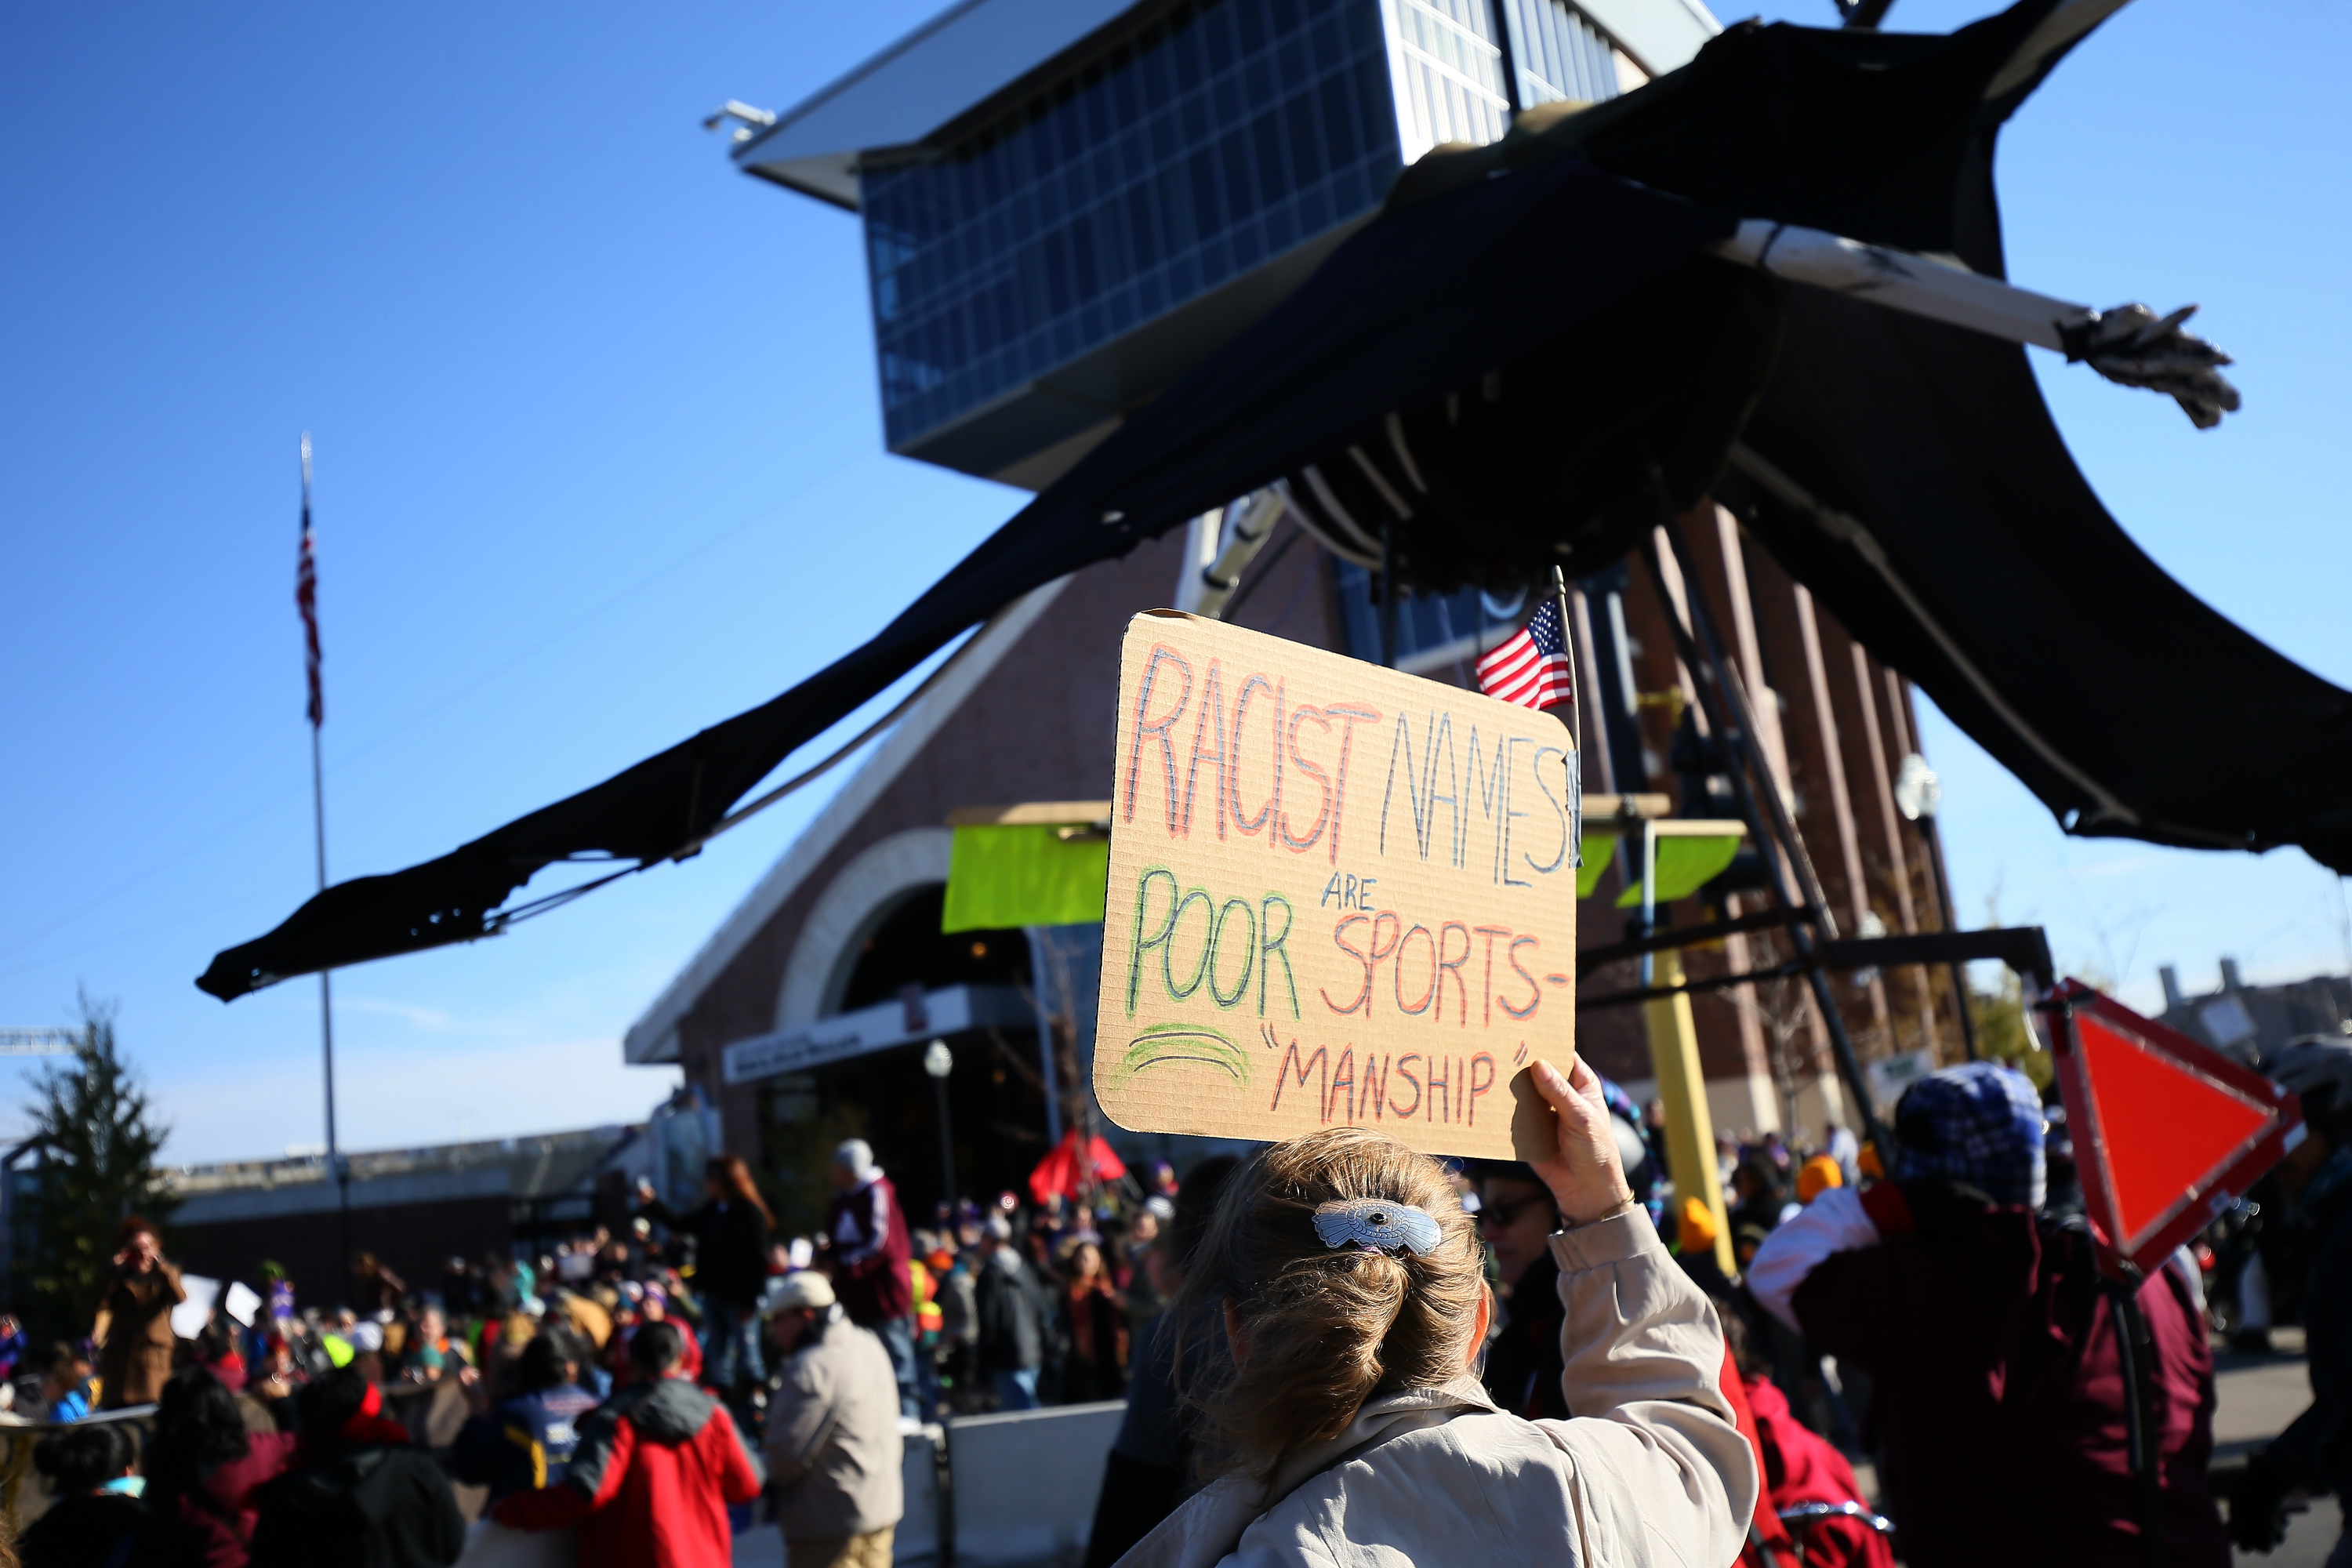 Protesters demonstrate at a Washington Redskins game in 2014.